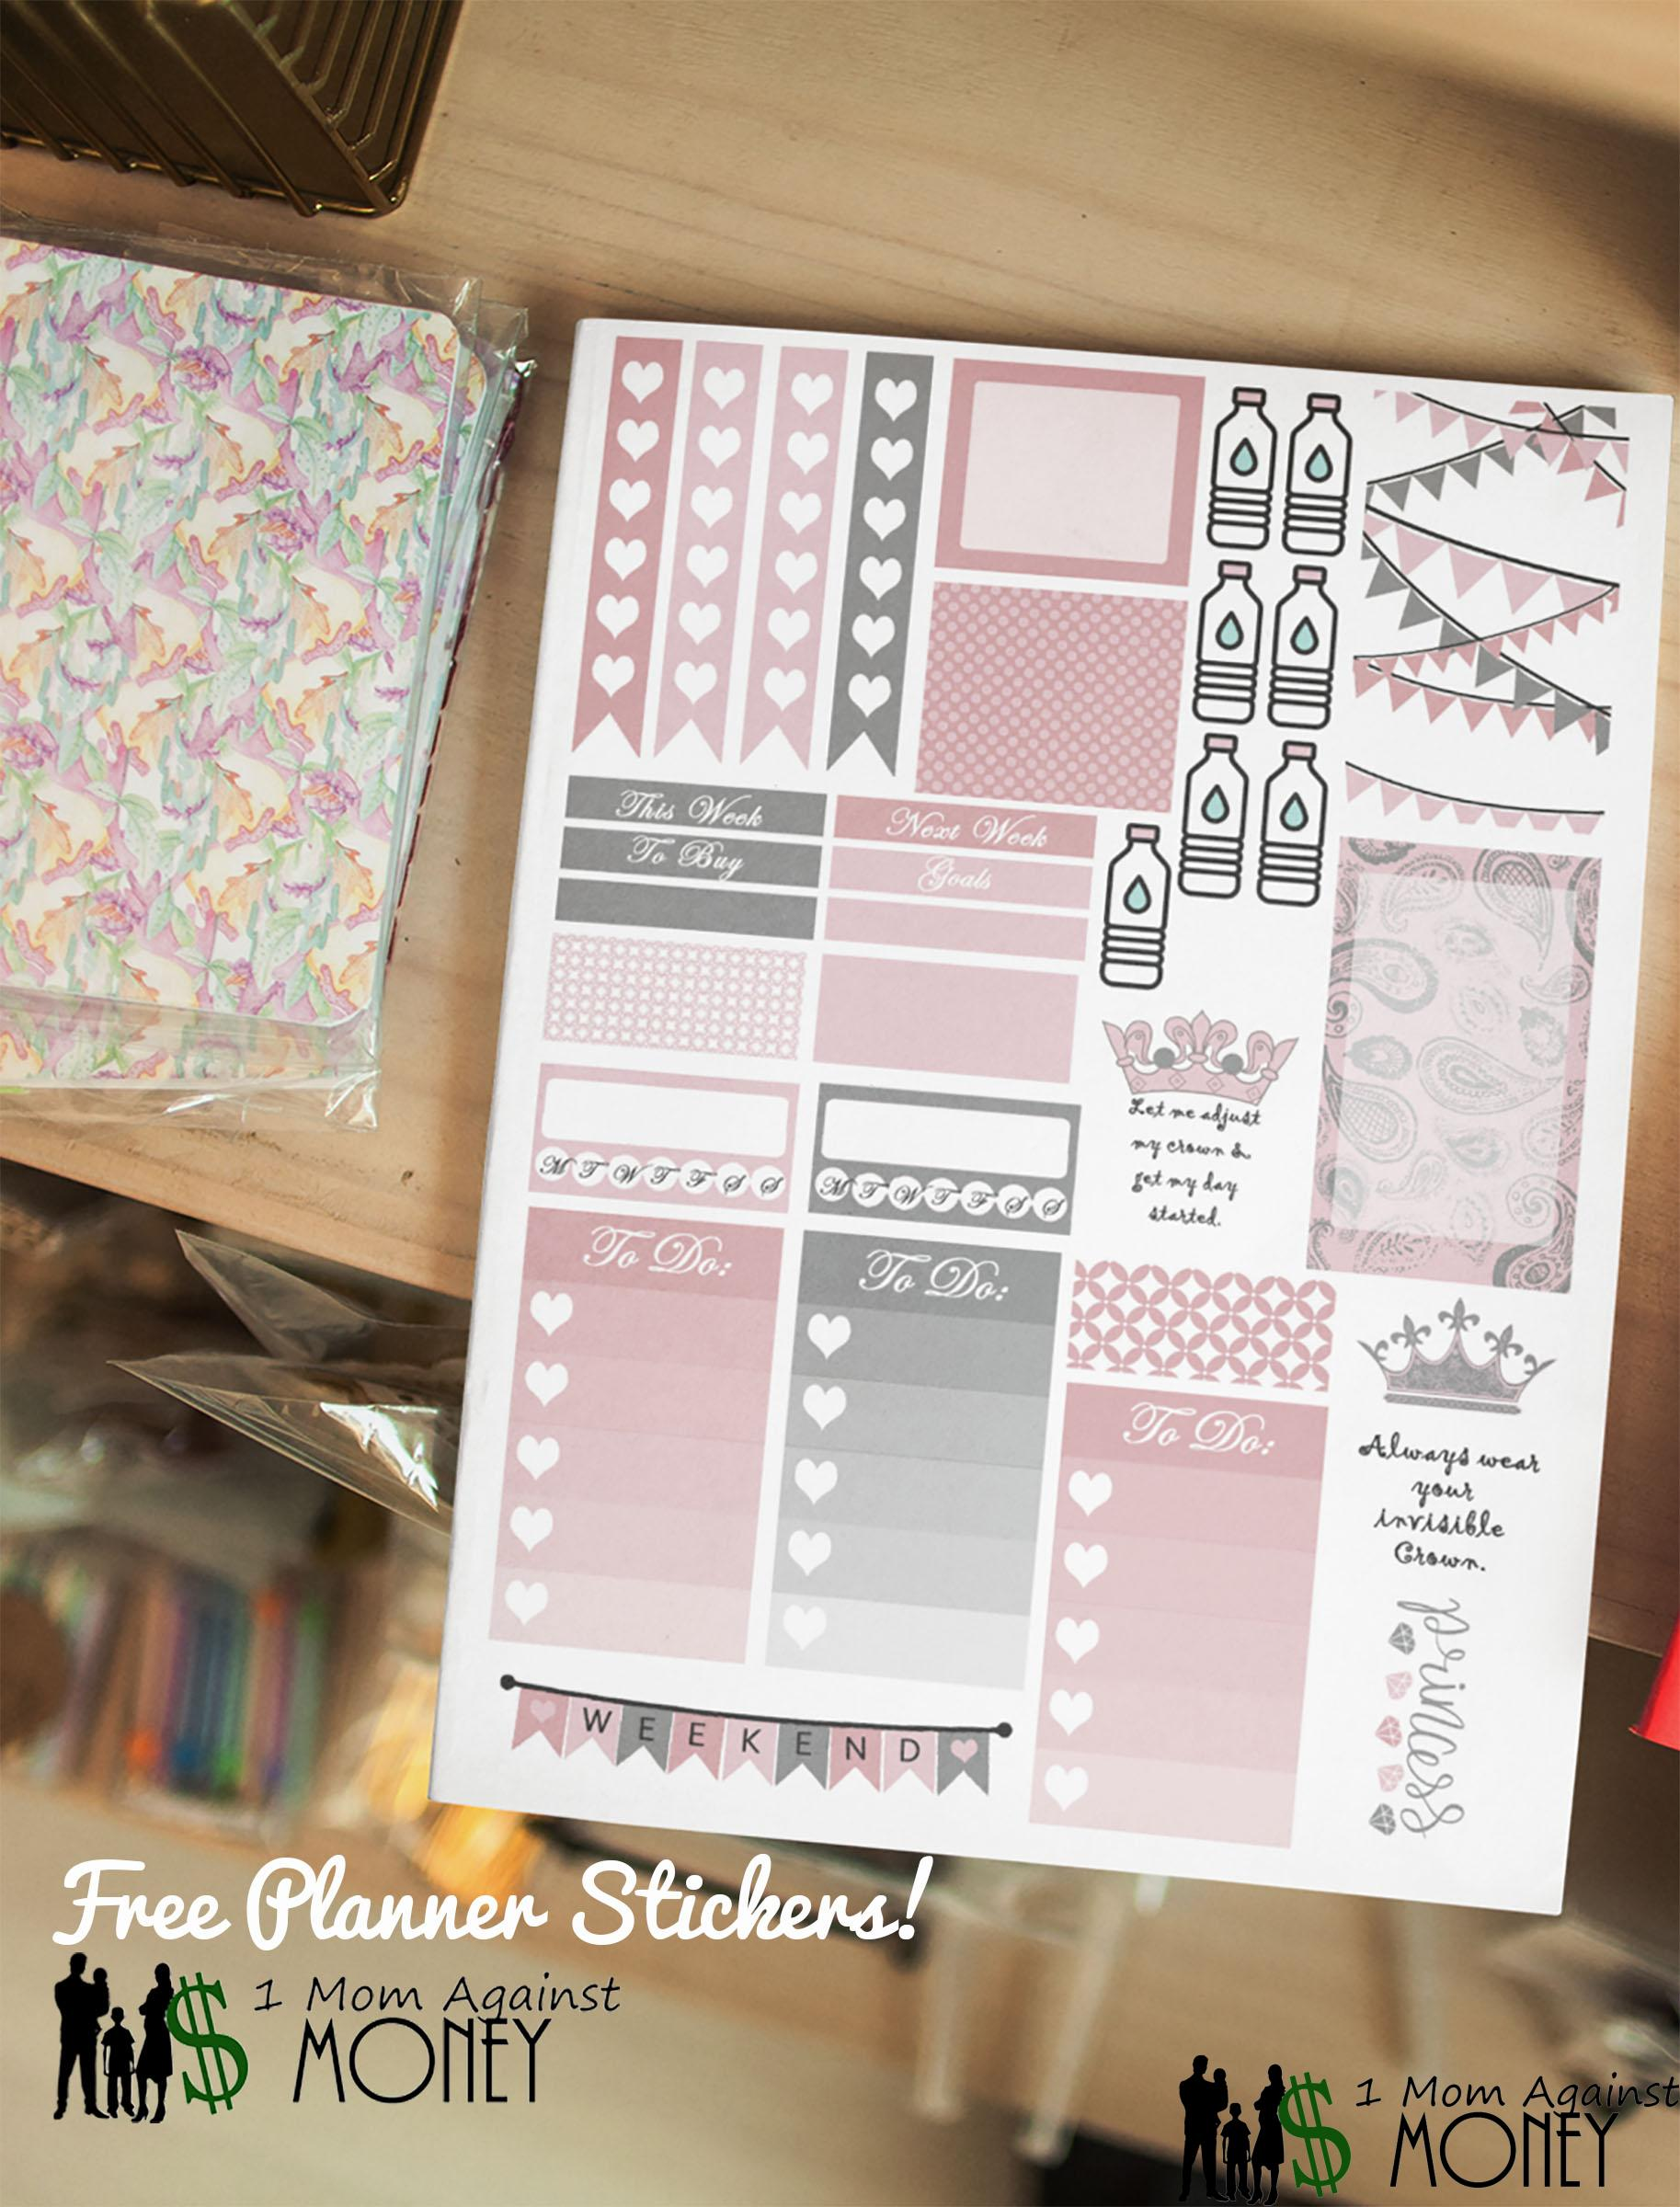 Queen Planner Sticker Sheet Free!